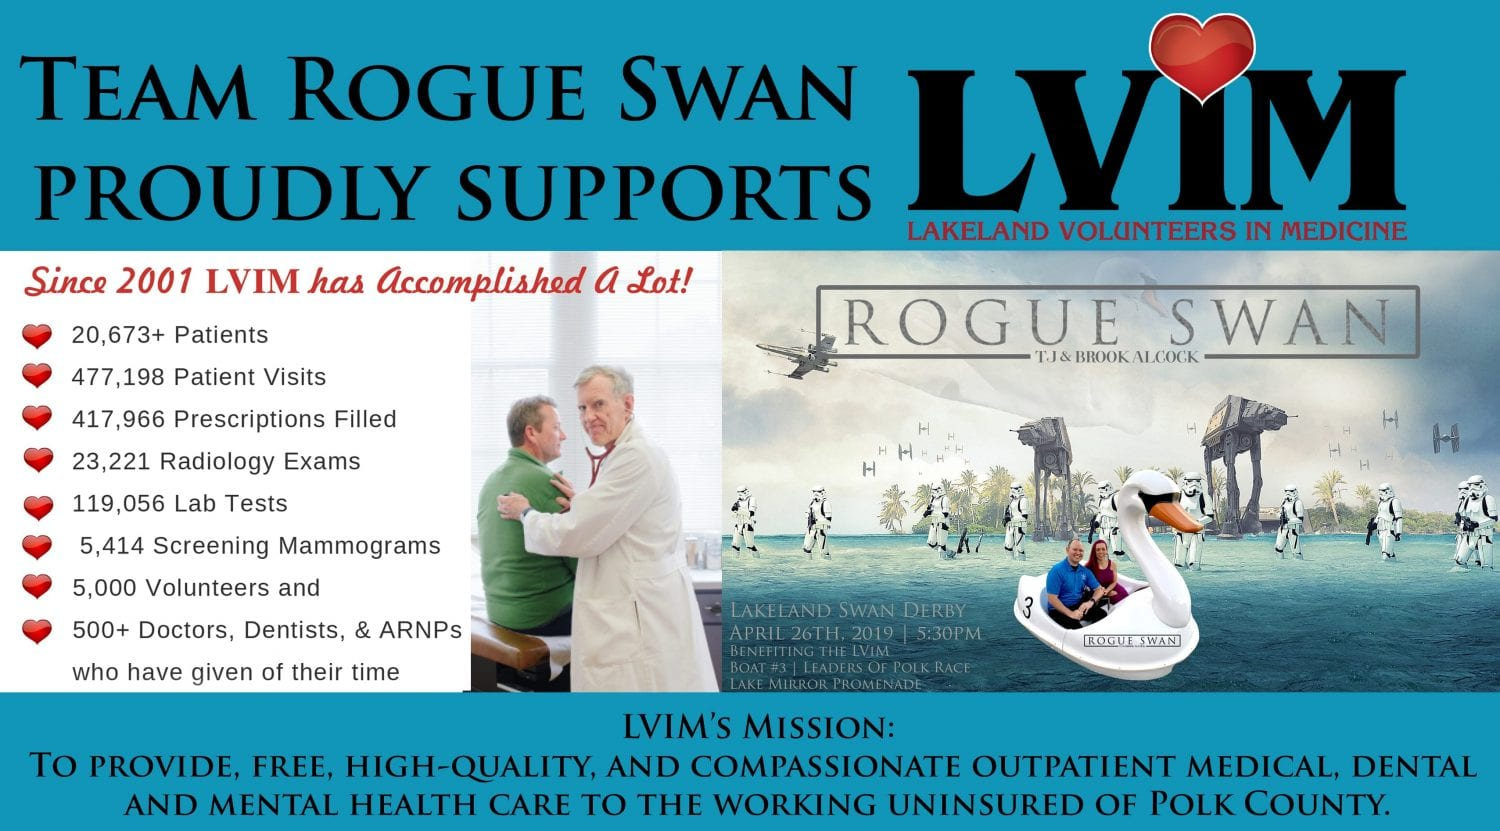 TBA Marketing Proudly Supports The LVIM - Team Rogue Swan